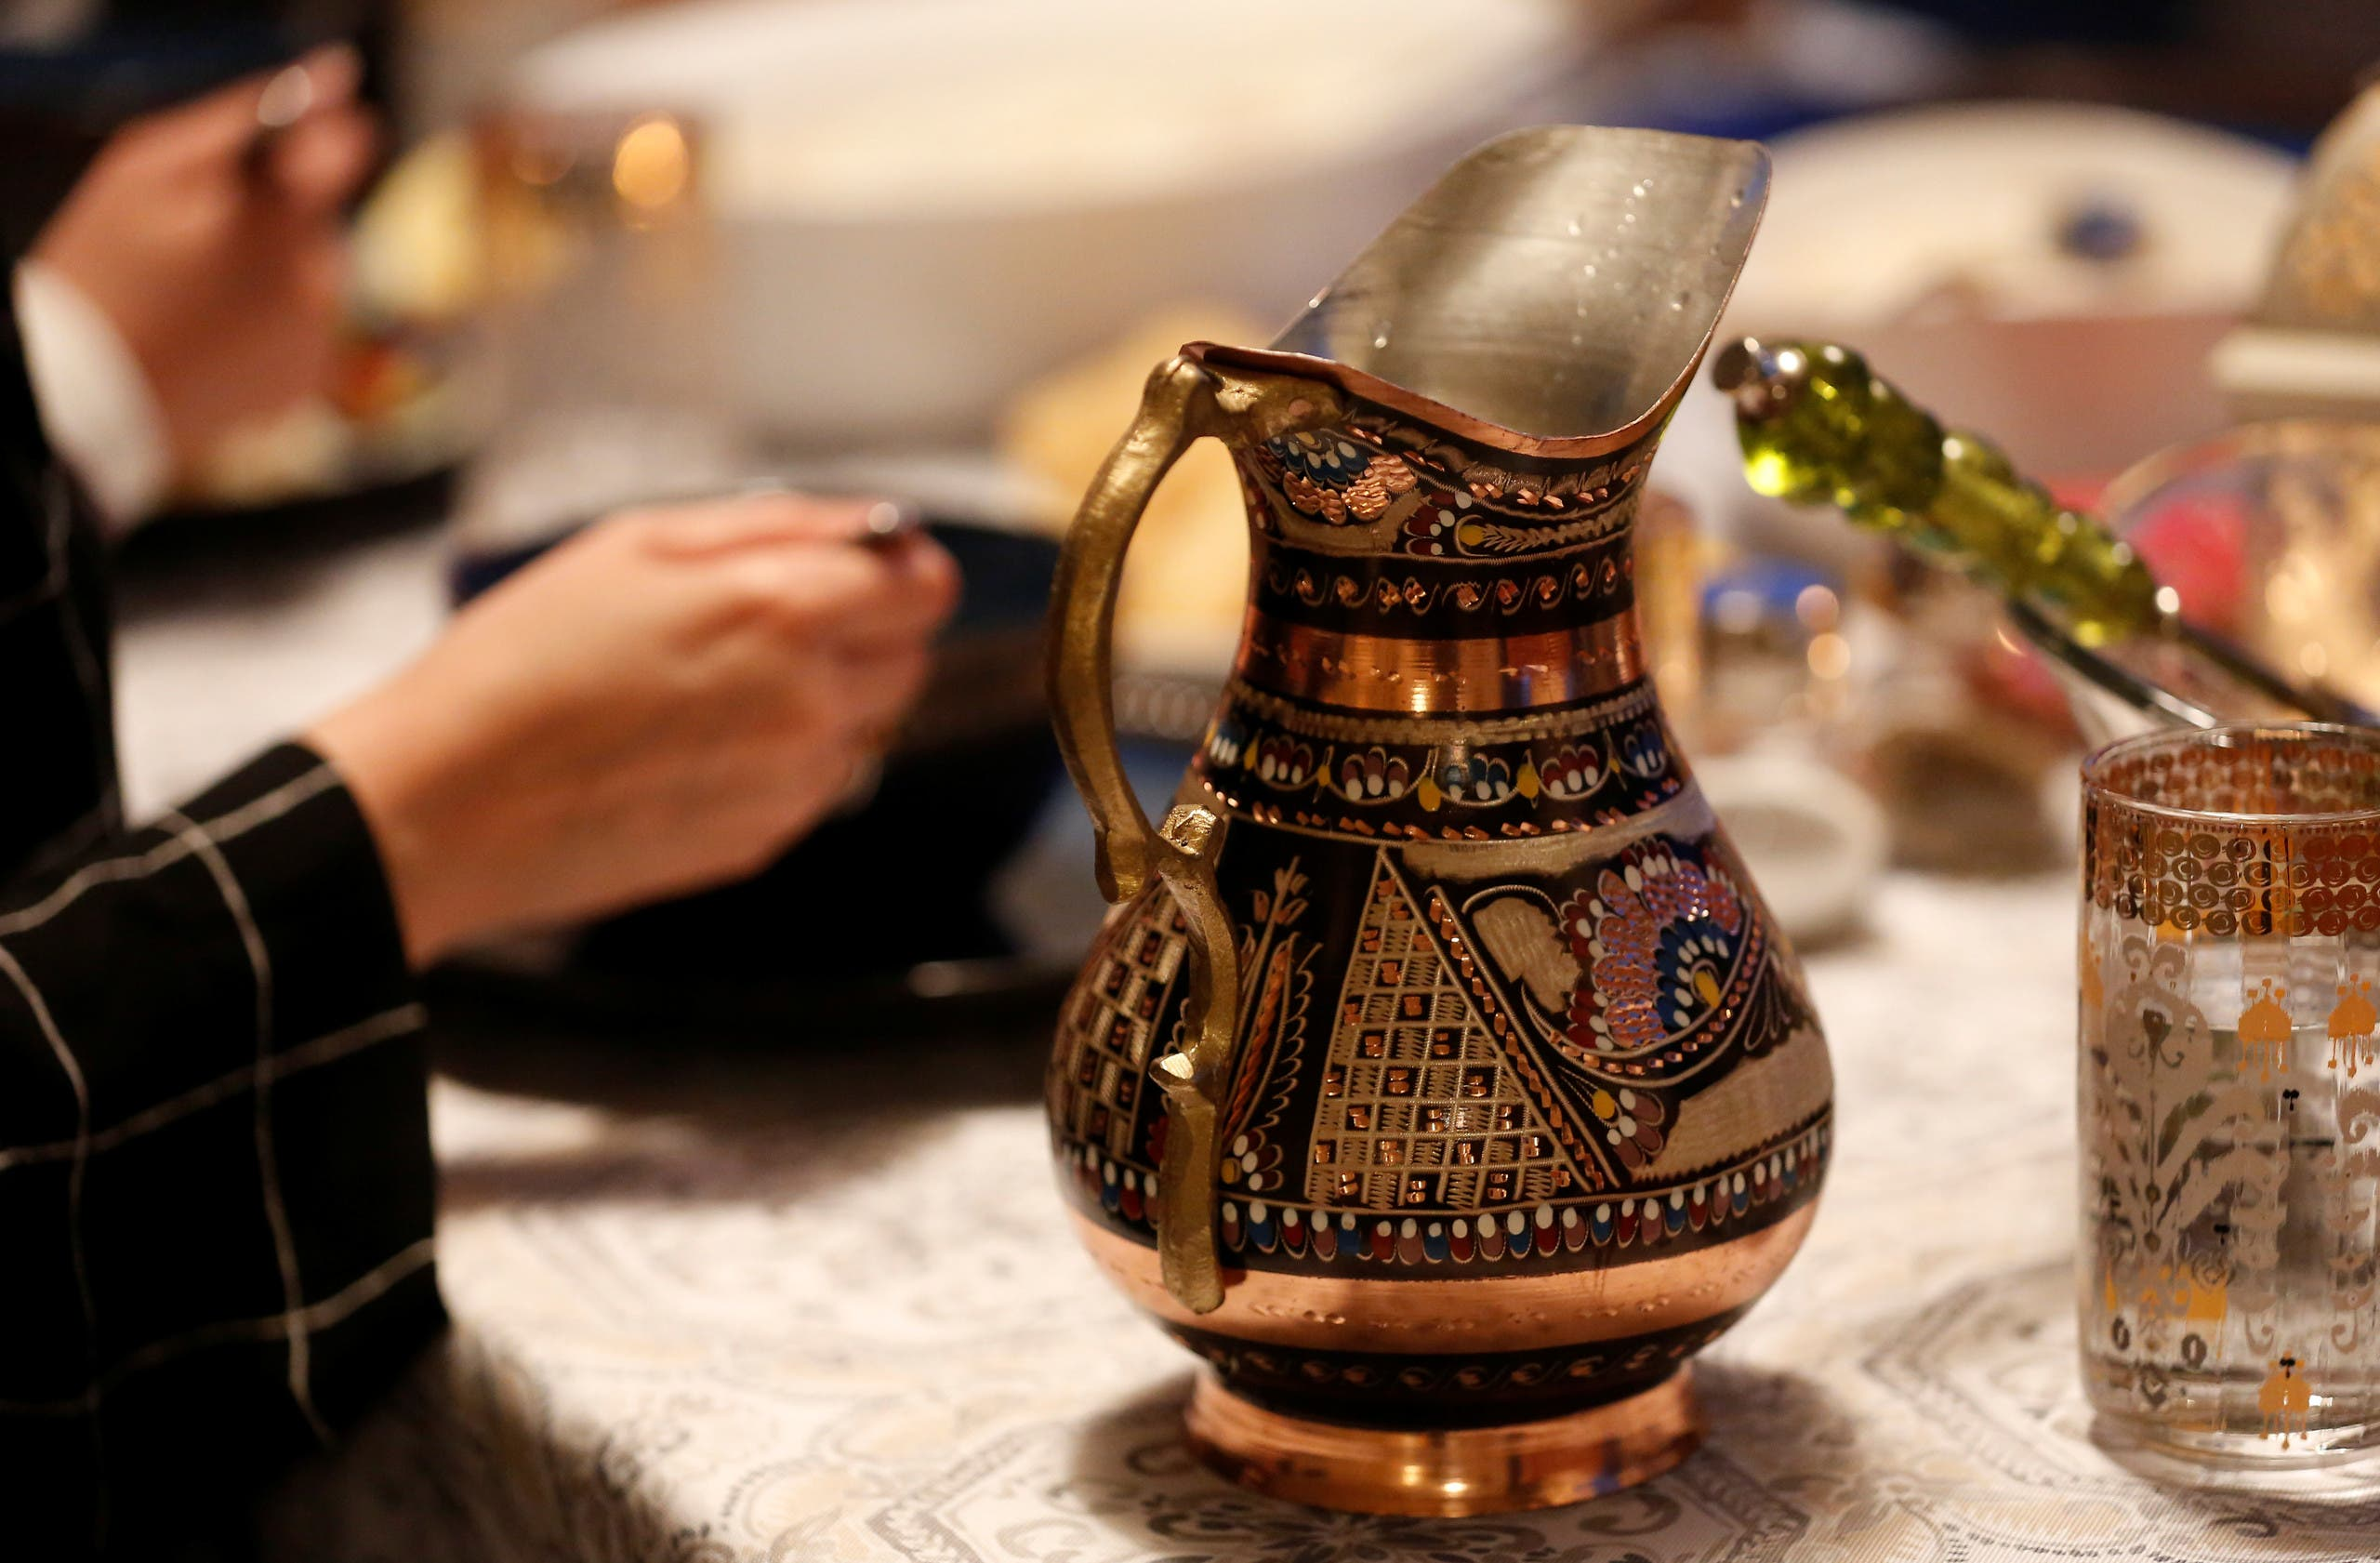 An intricate water vase sits on the table as a family eats their iftar meal on the first day of Ramadan in Bellevue. (File photo: Reuters)